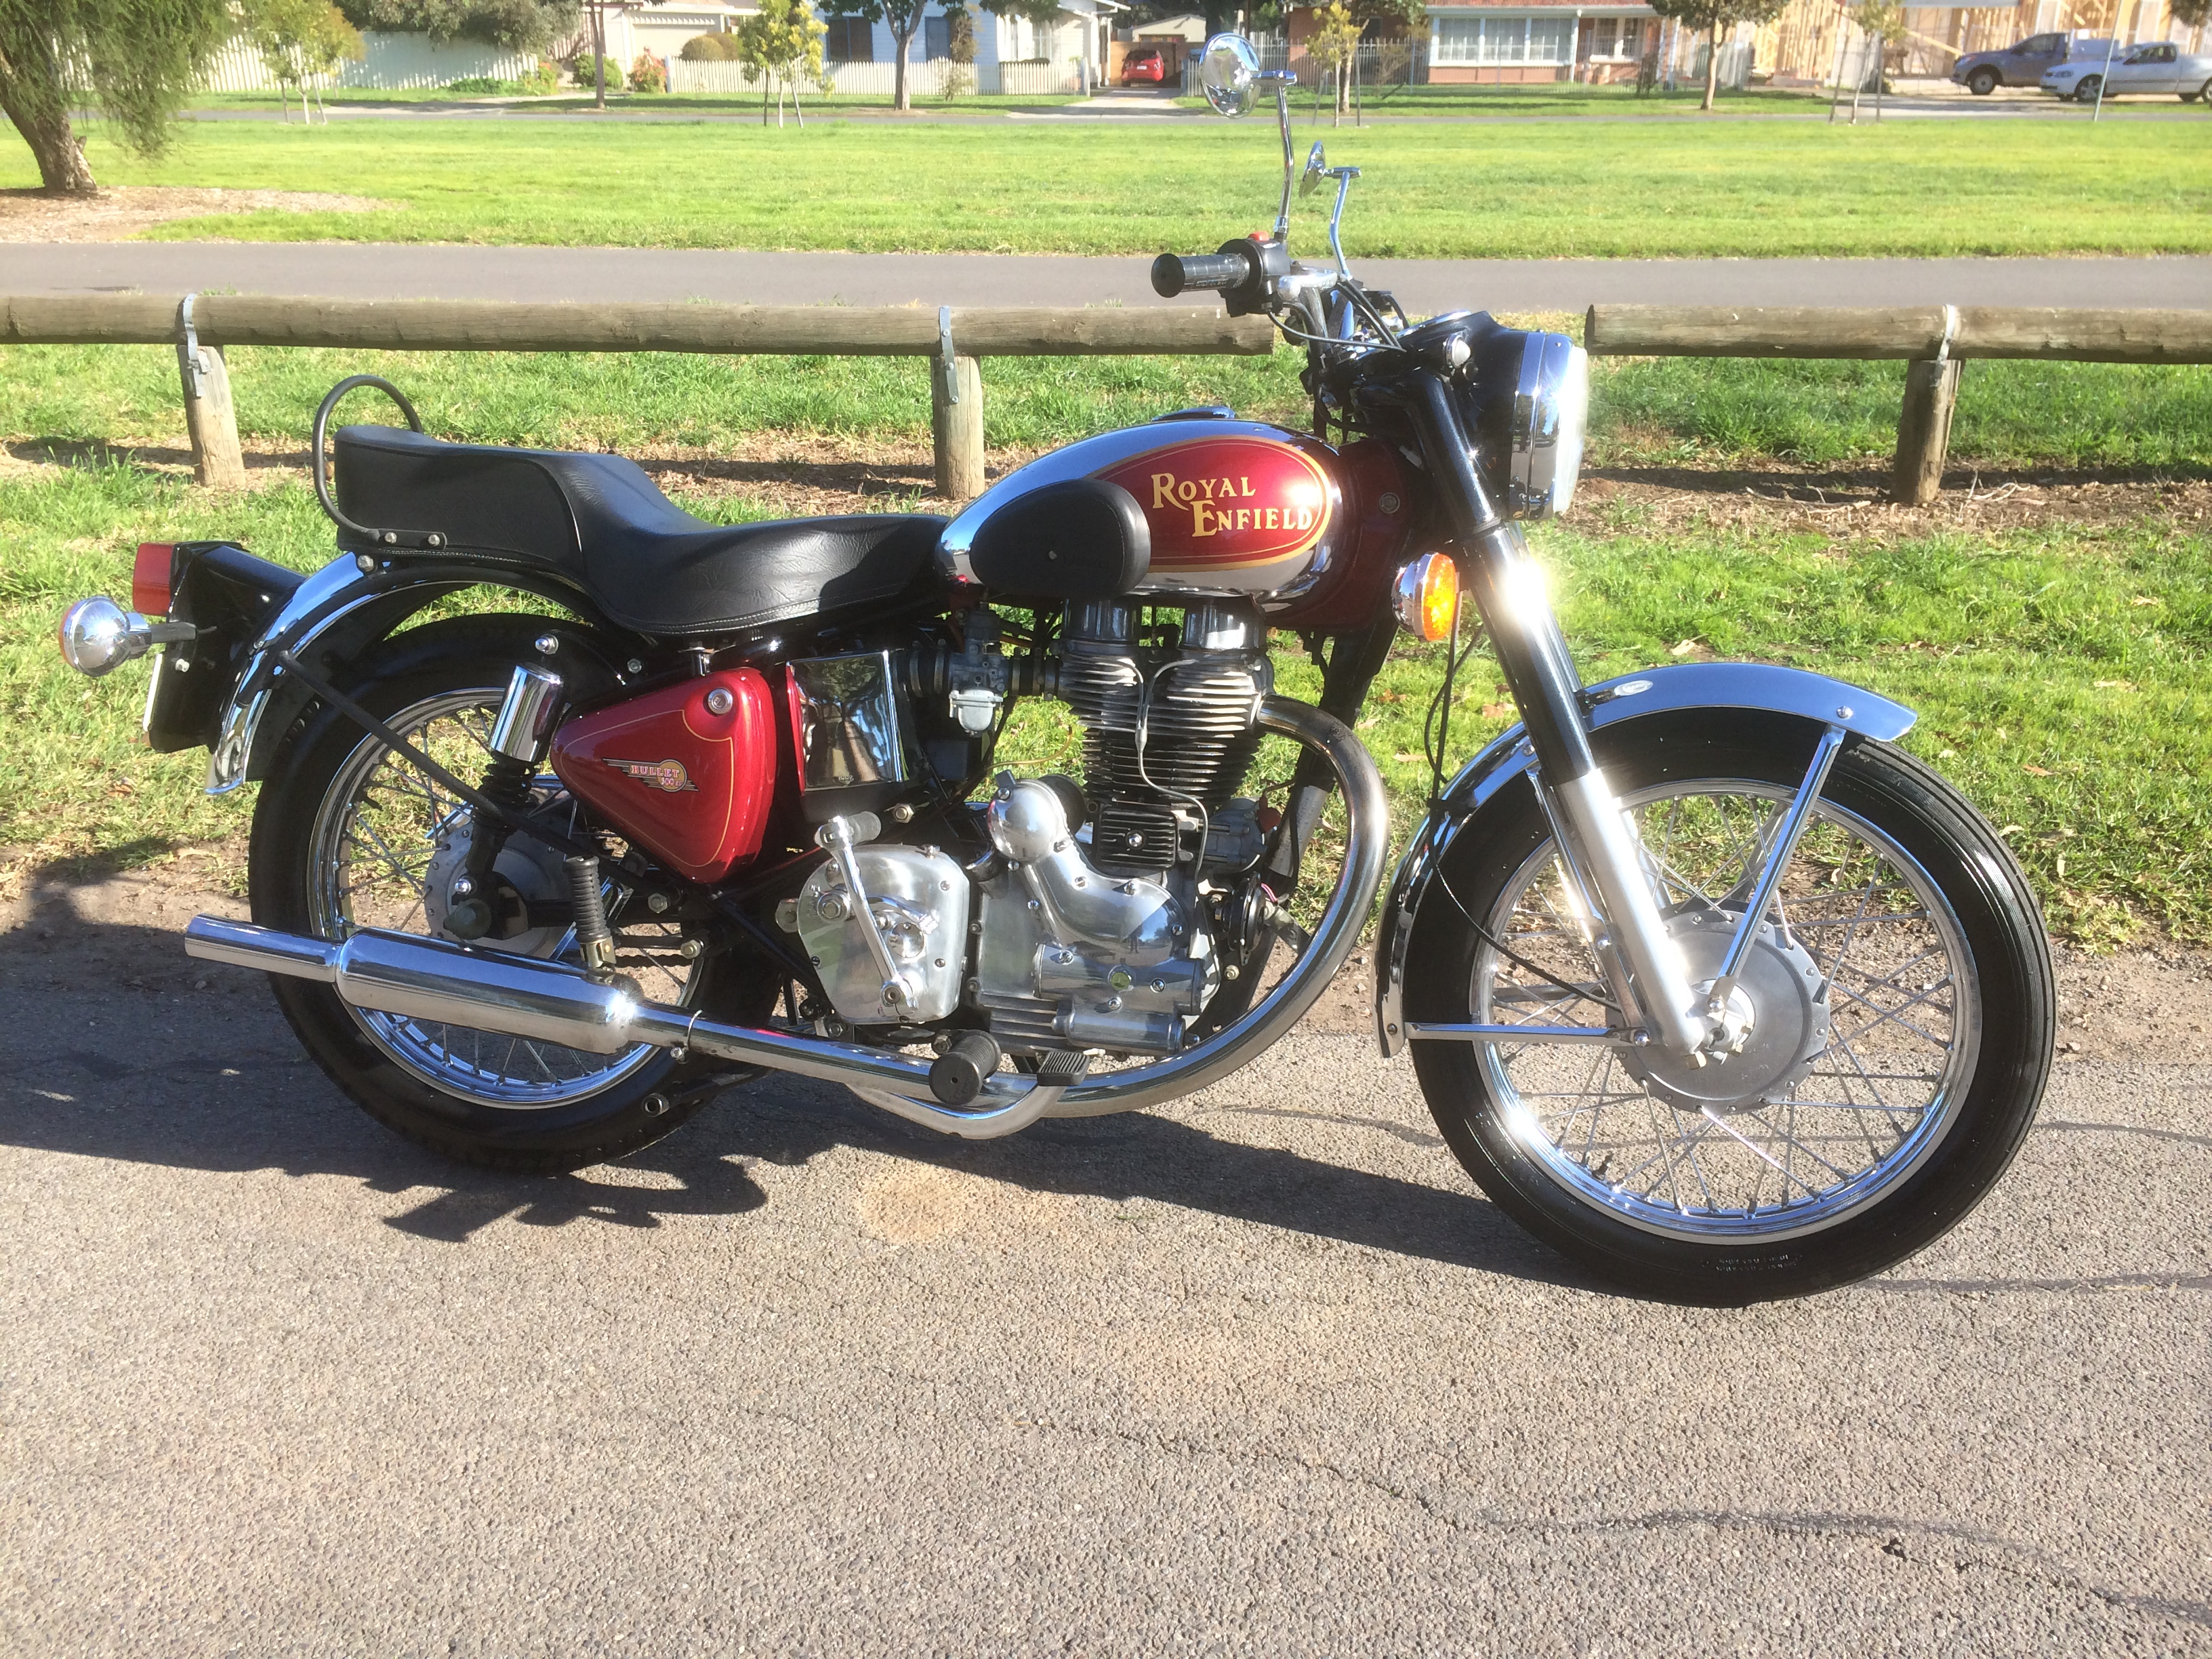 Royal Enfield Diesel 1999 images #123127